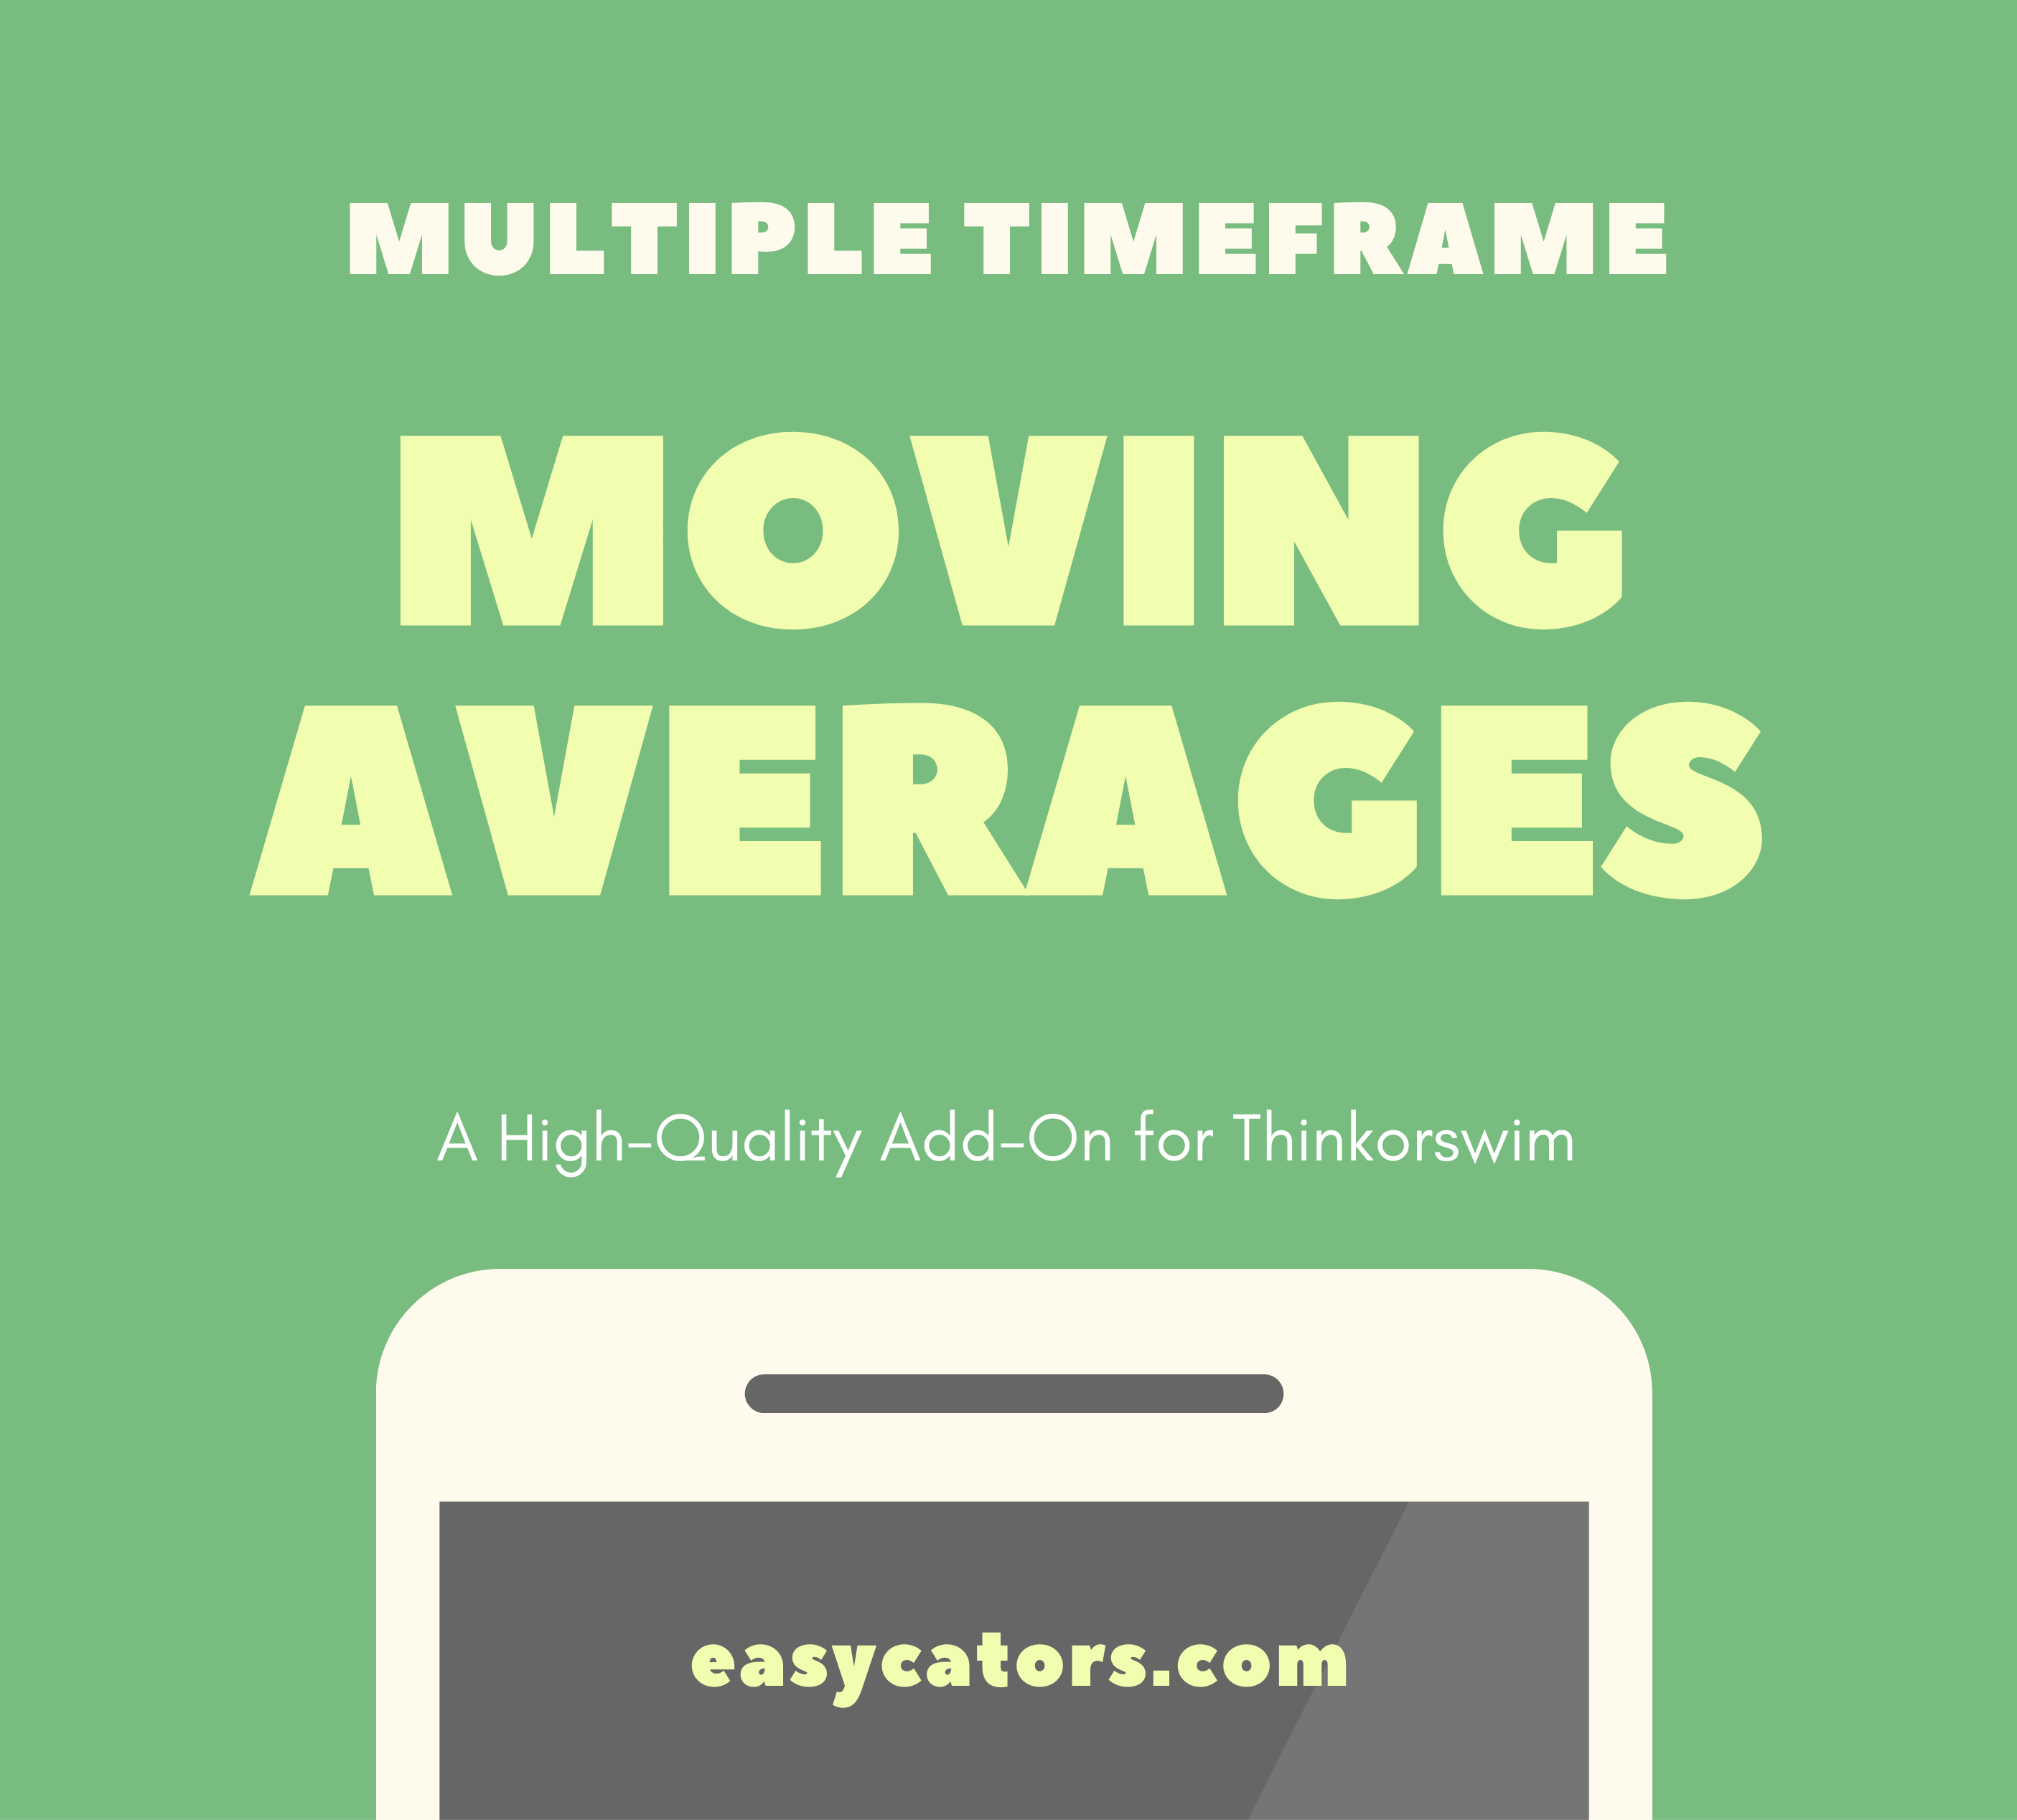 Multiple Timeframe Moving Averages for ThinkOrSwim